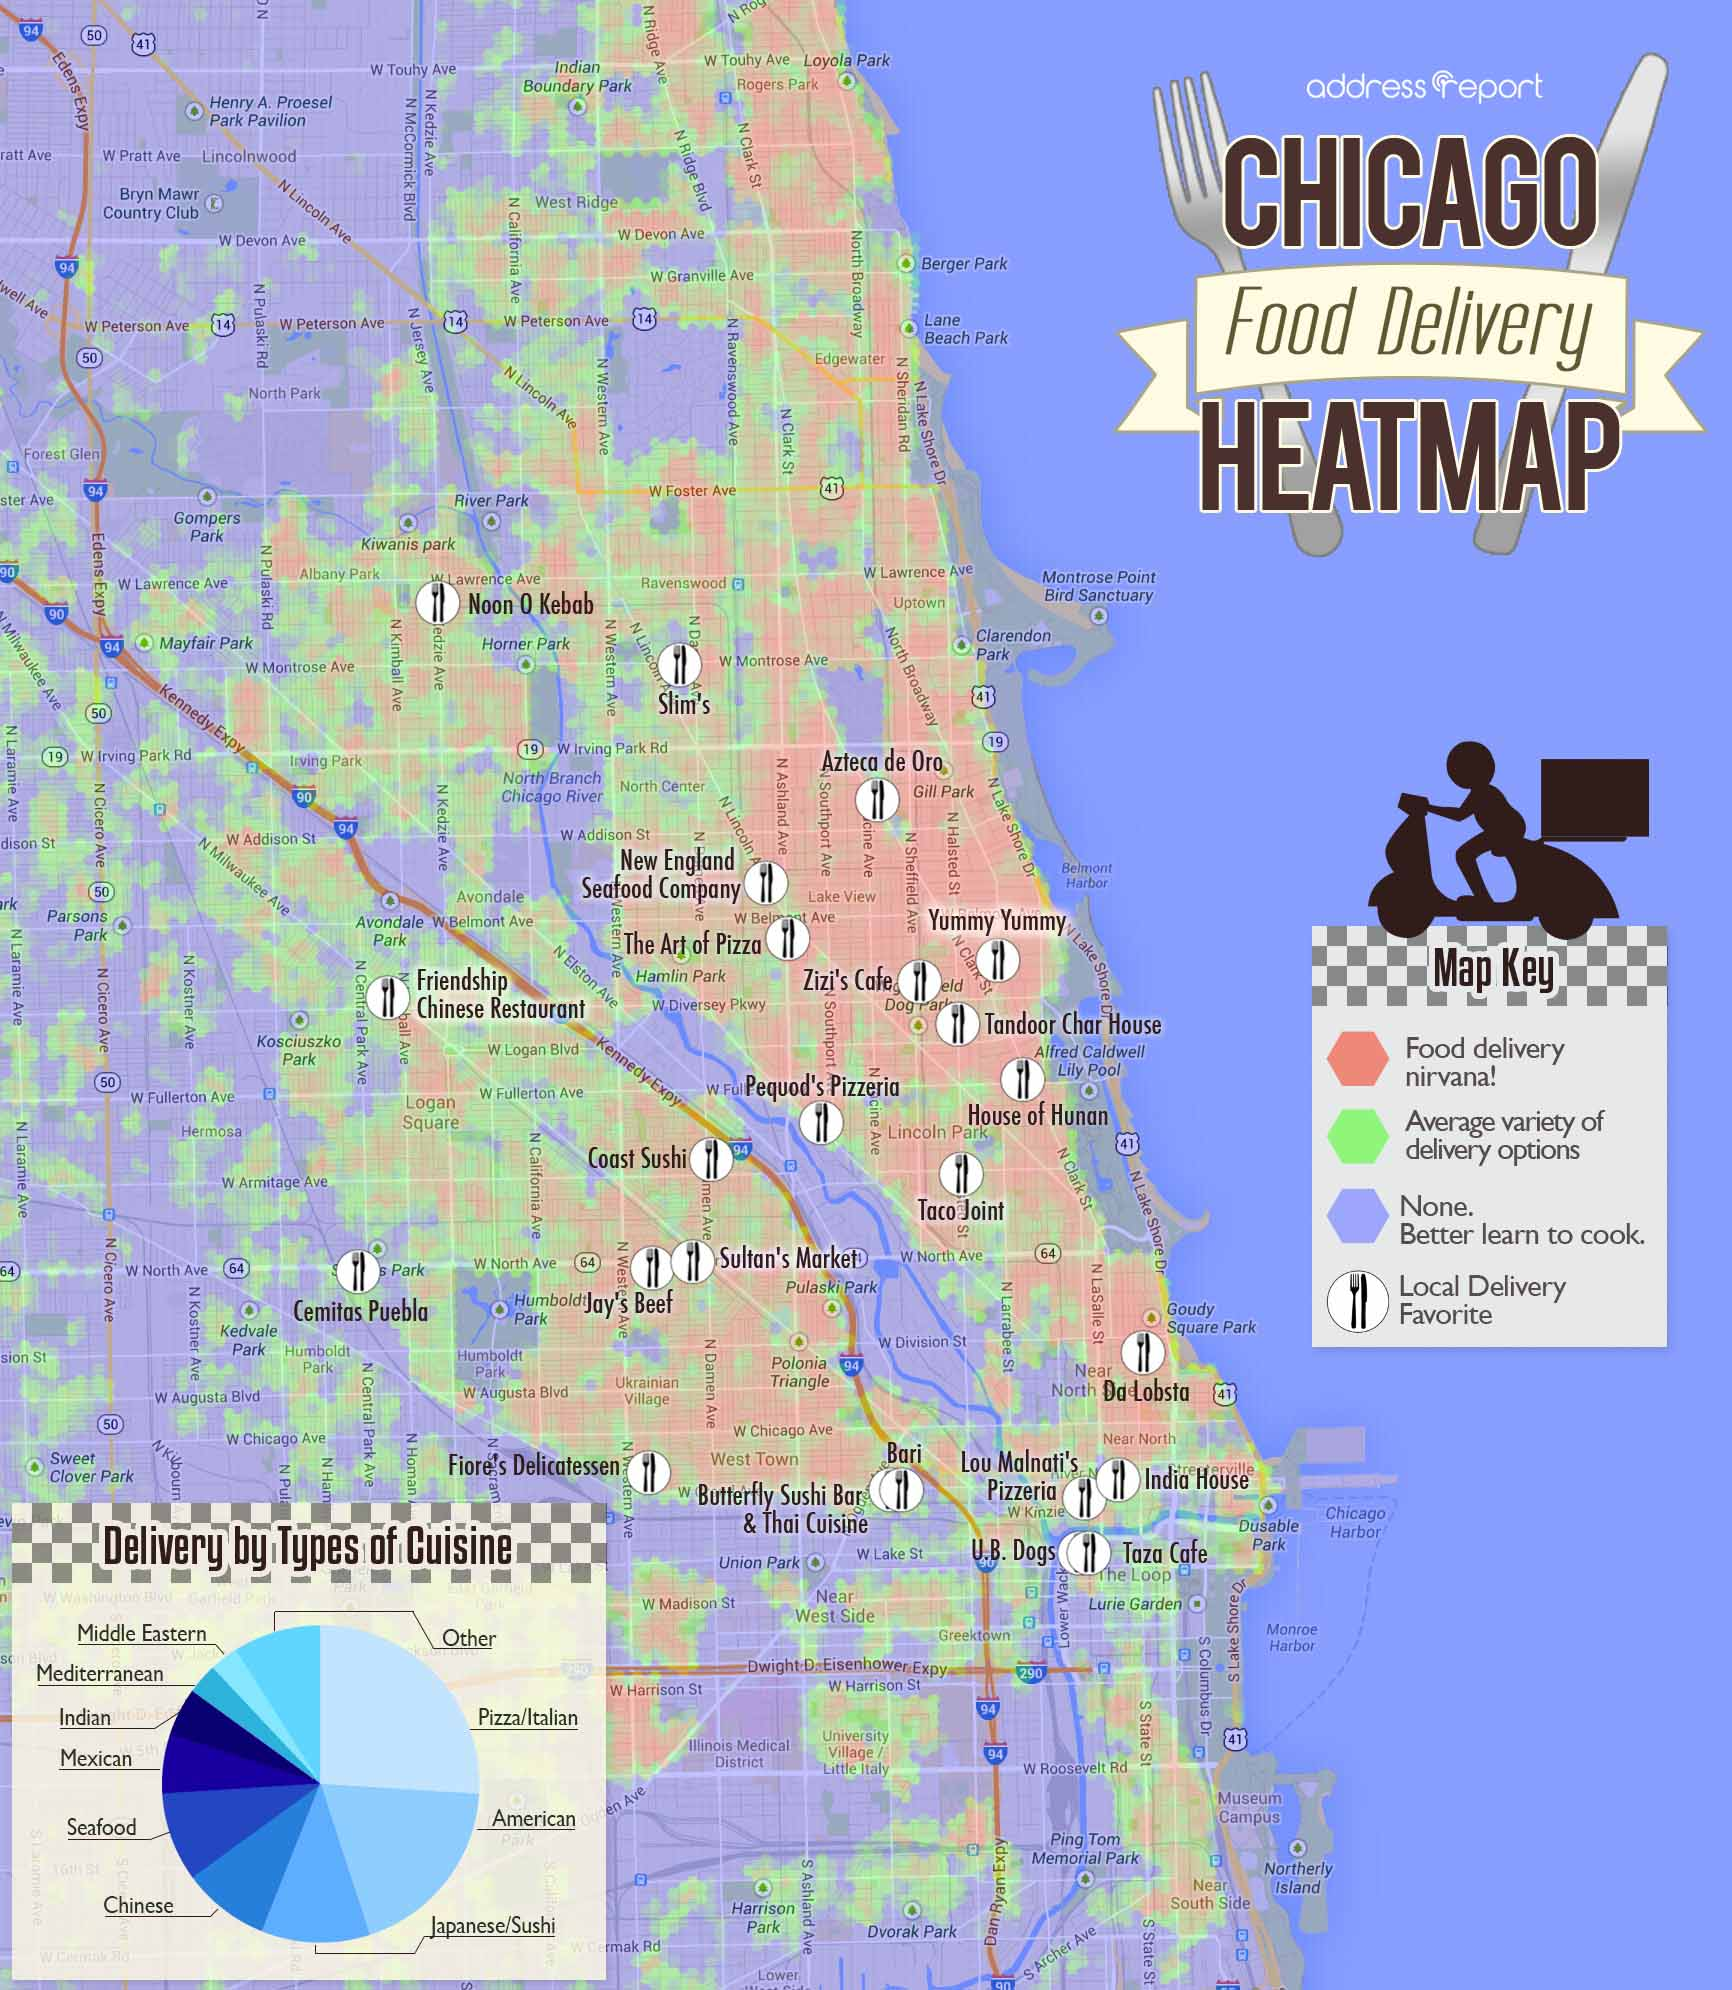 Chicago Food Delivery Heatmap by Rentenna